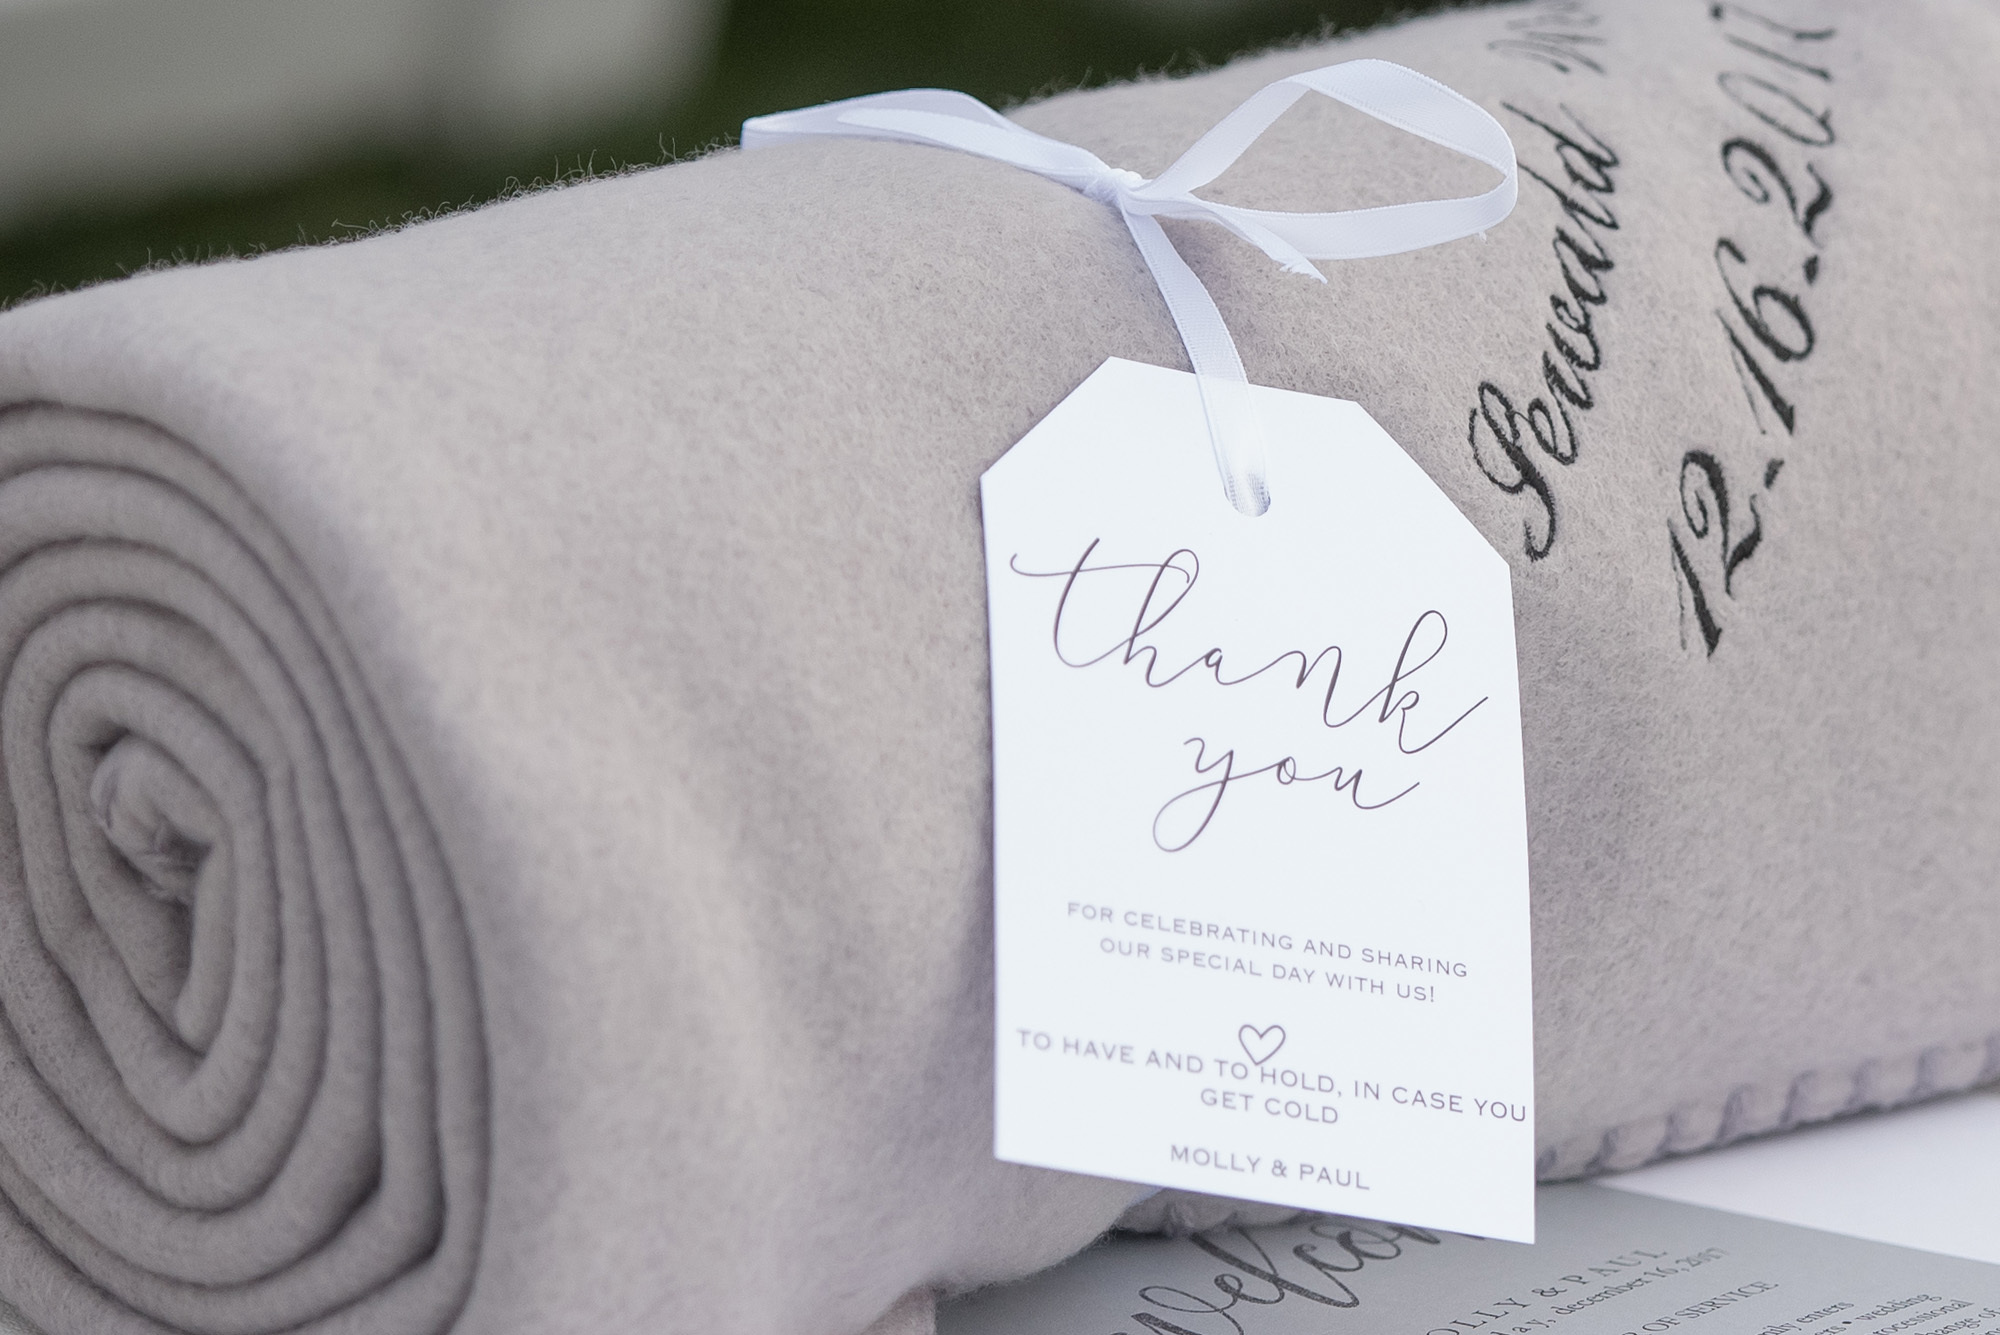 las vegas wedding planner angelica rose events to have and to hold blanket.jpg